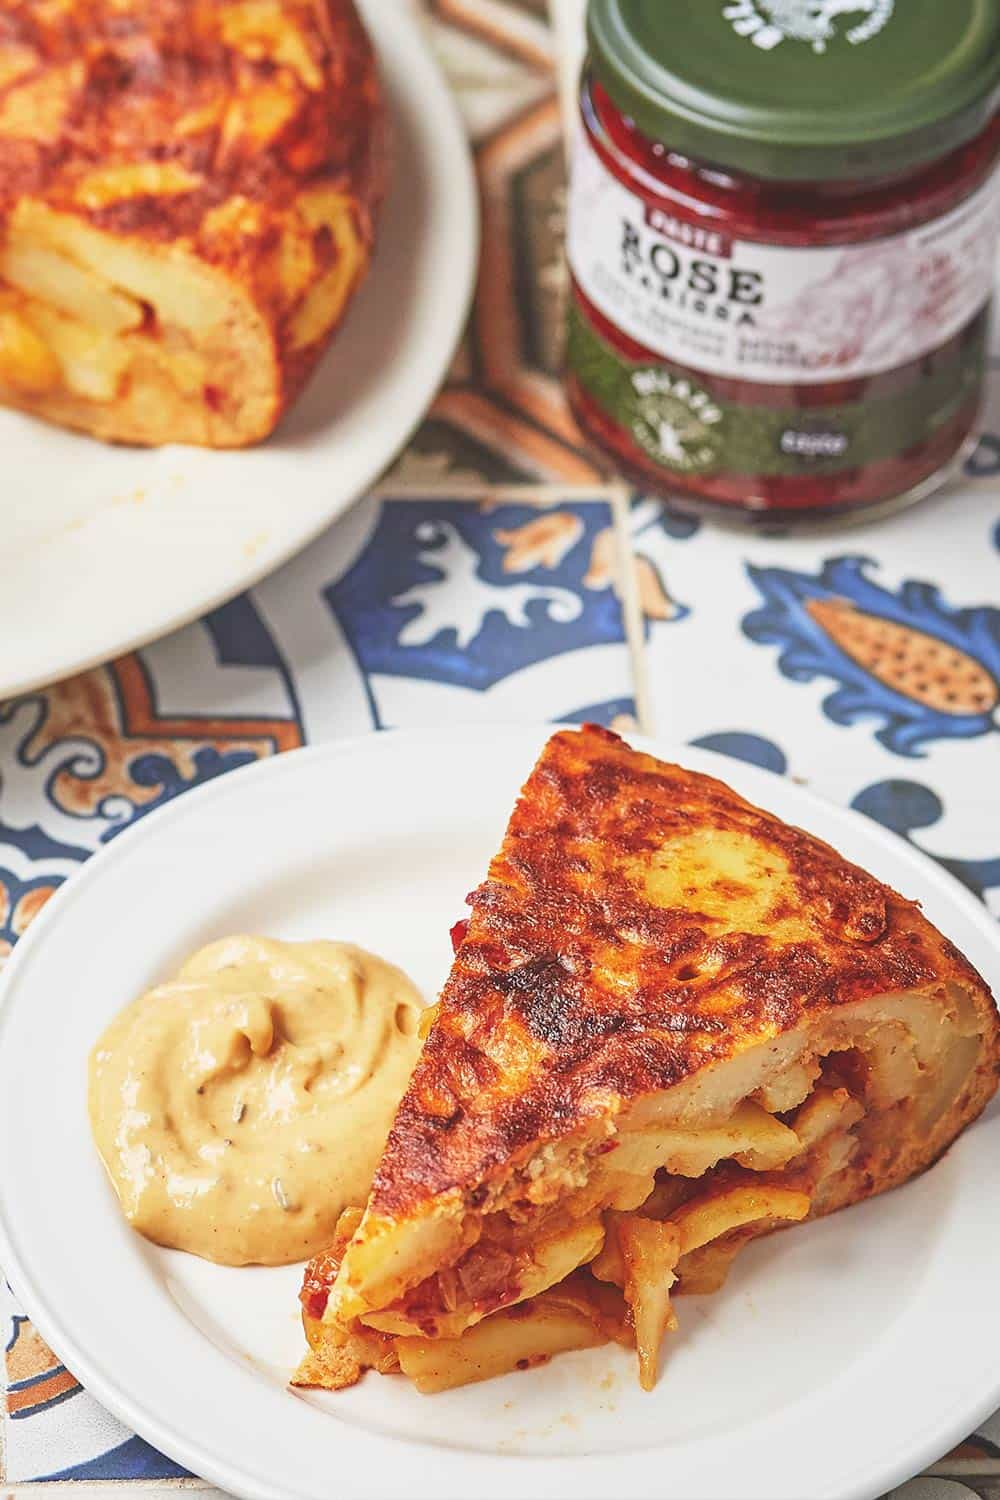 Spanish Omelette with Rose Harissa